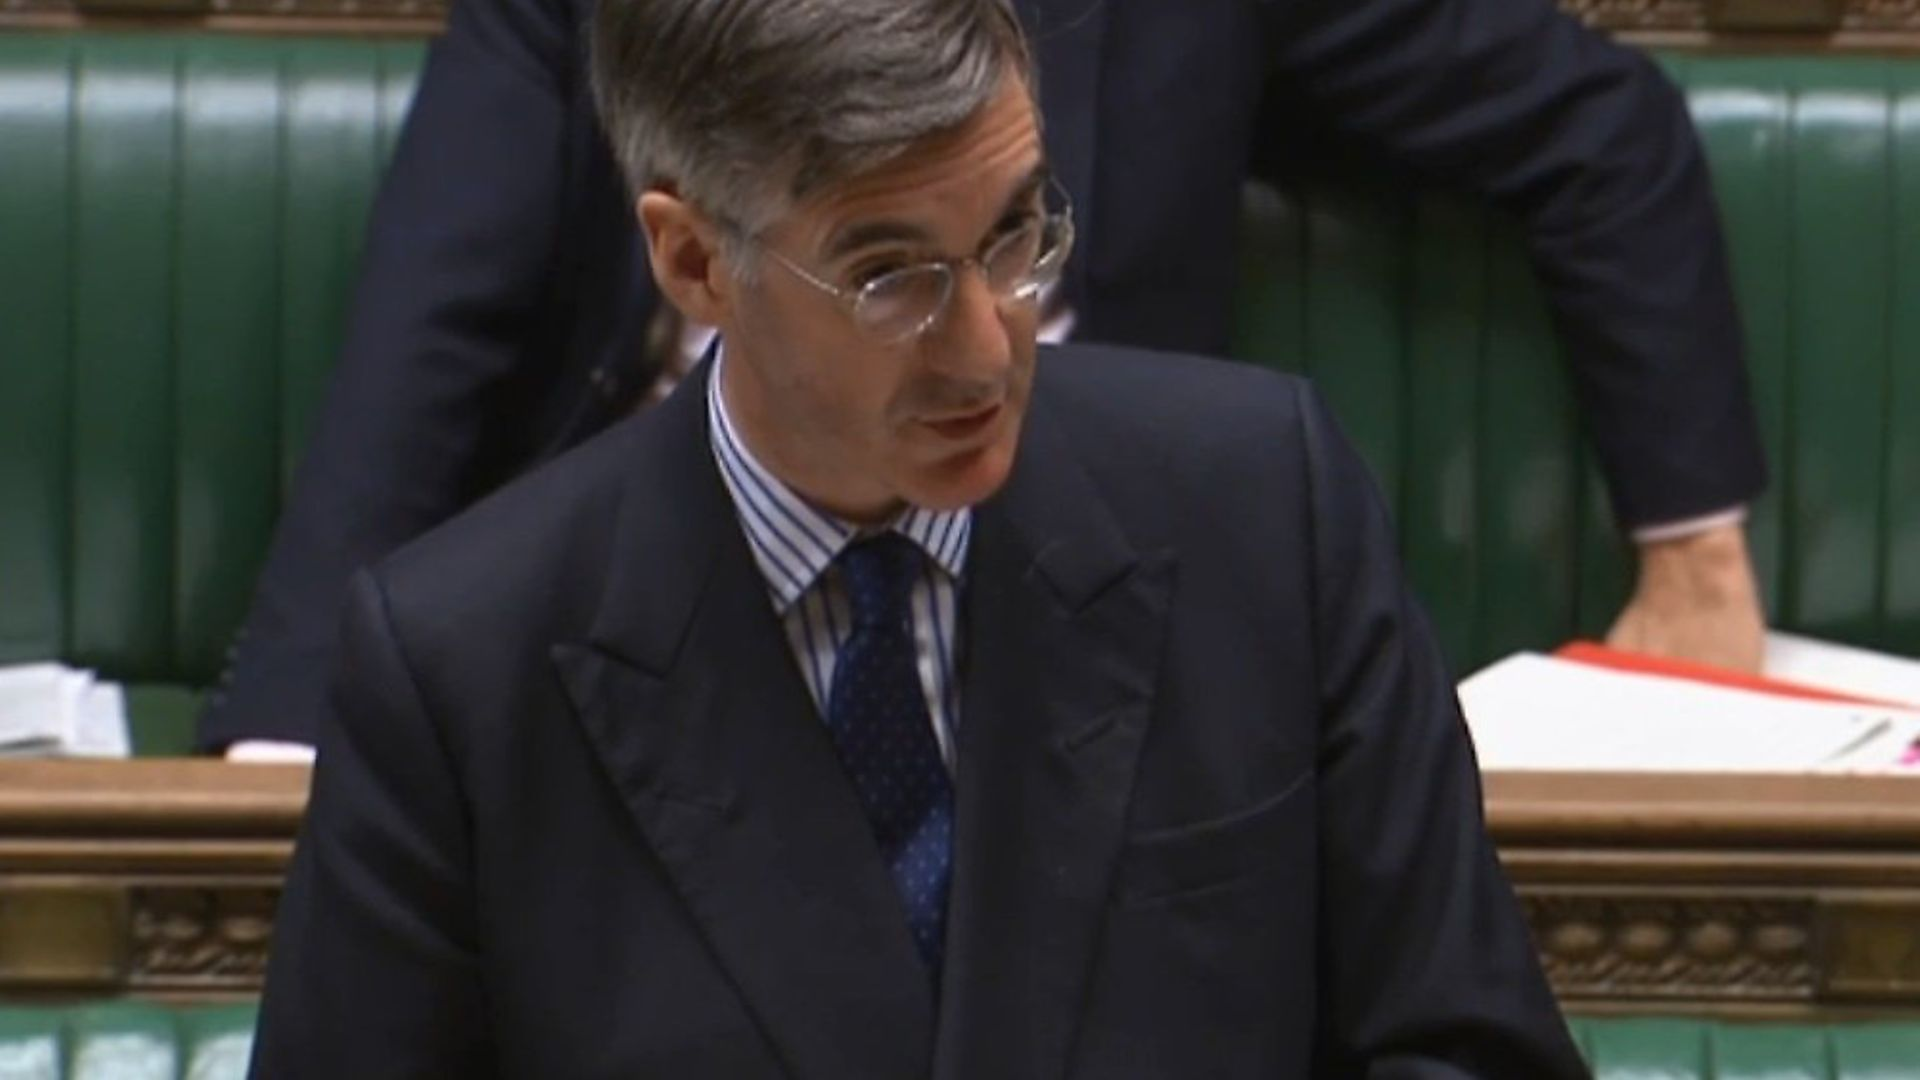 Jacob Rees-Mogg in the House of Commons. Photograph: Parliament TV. - Credit: Archant